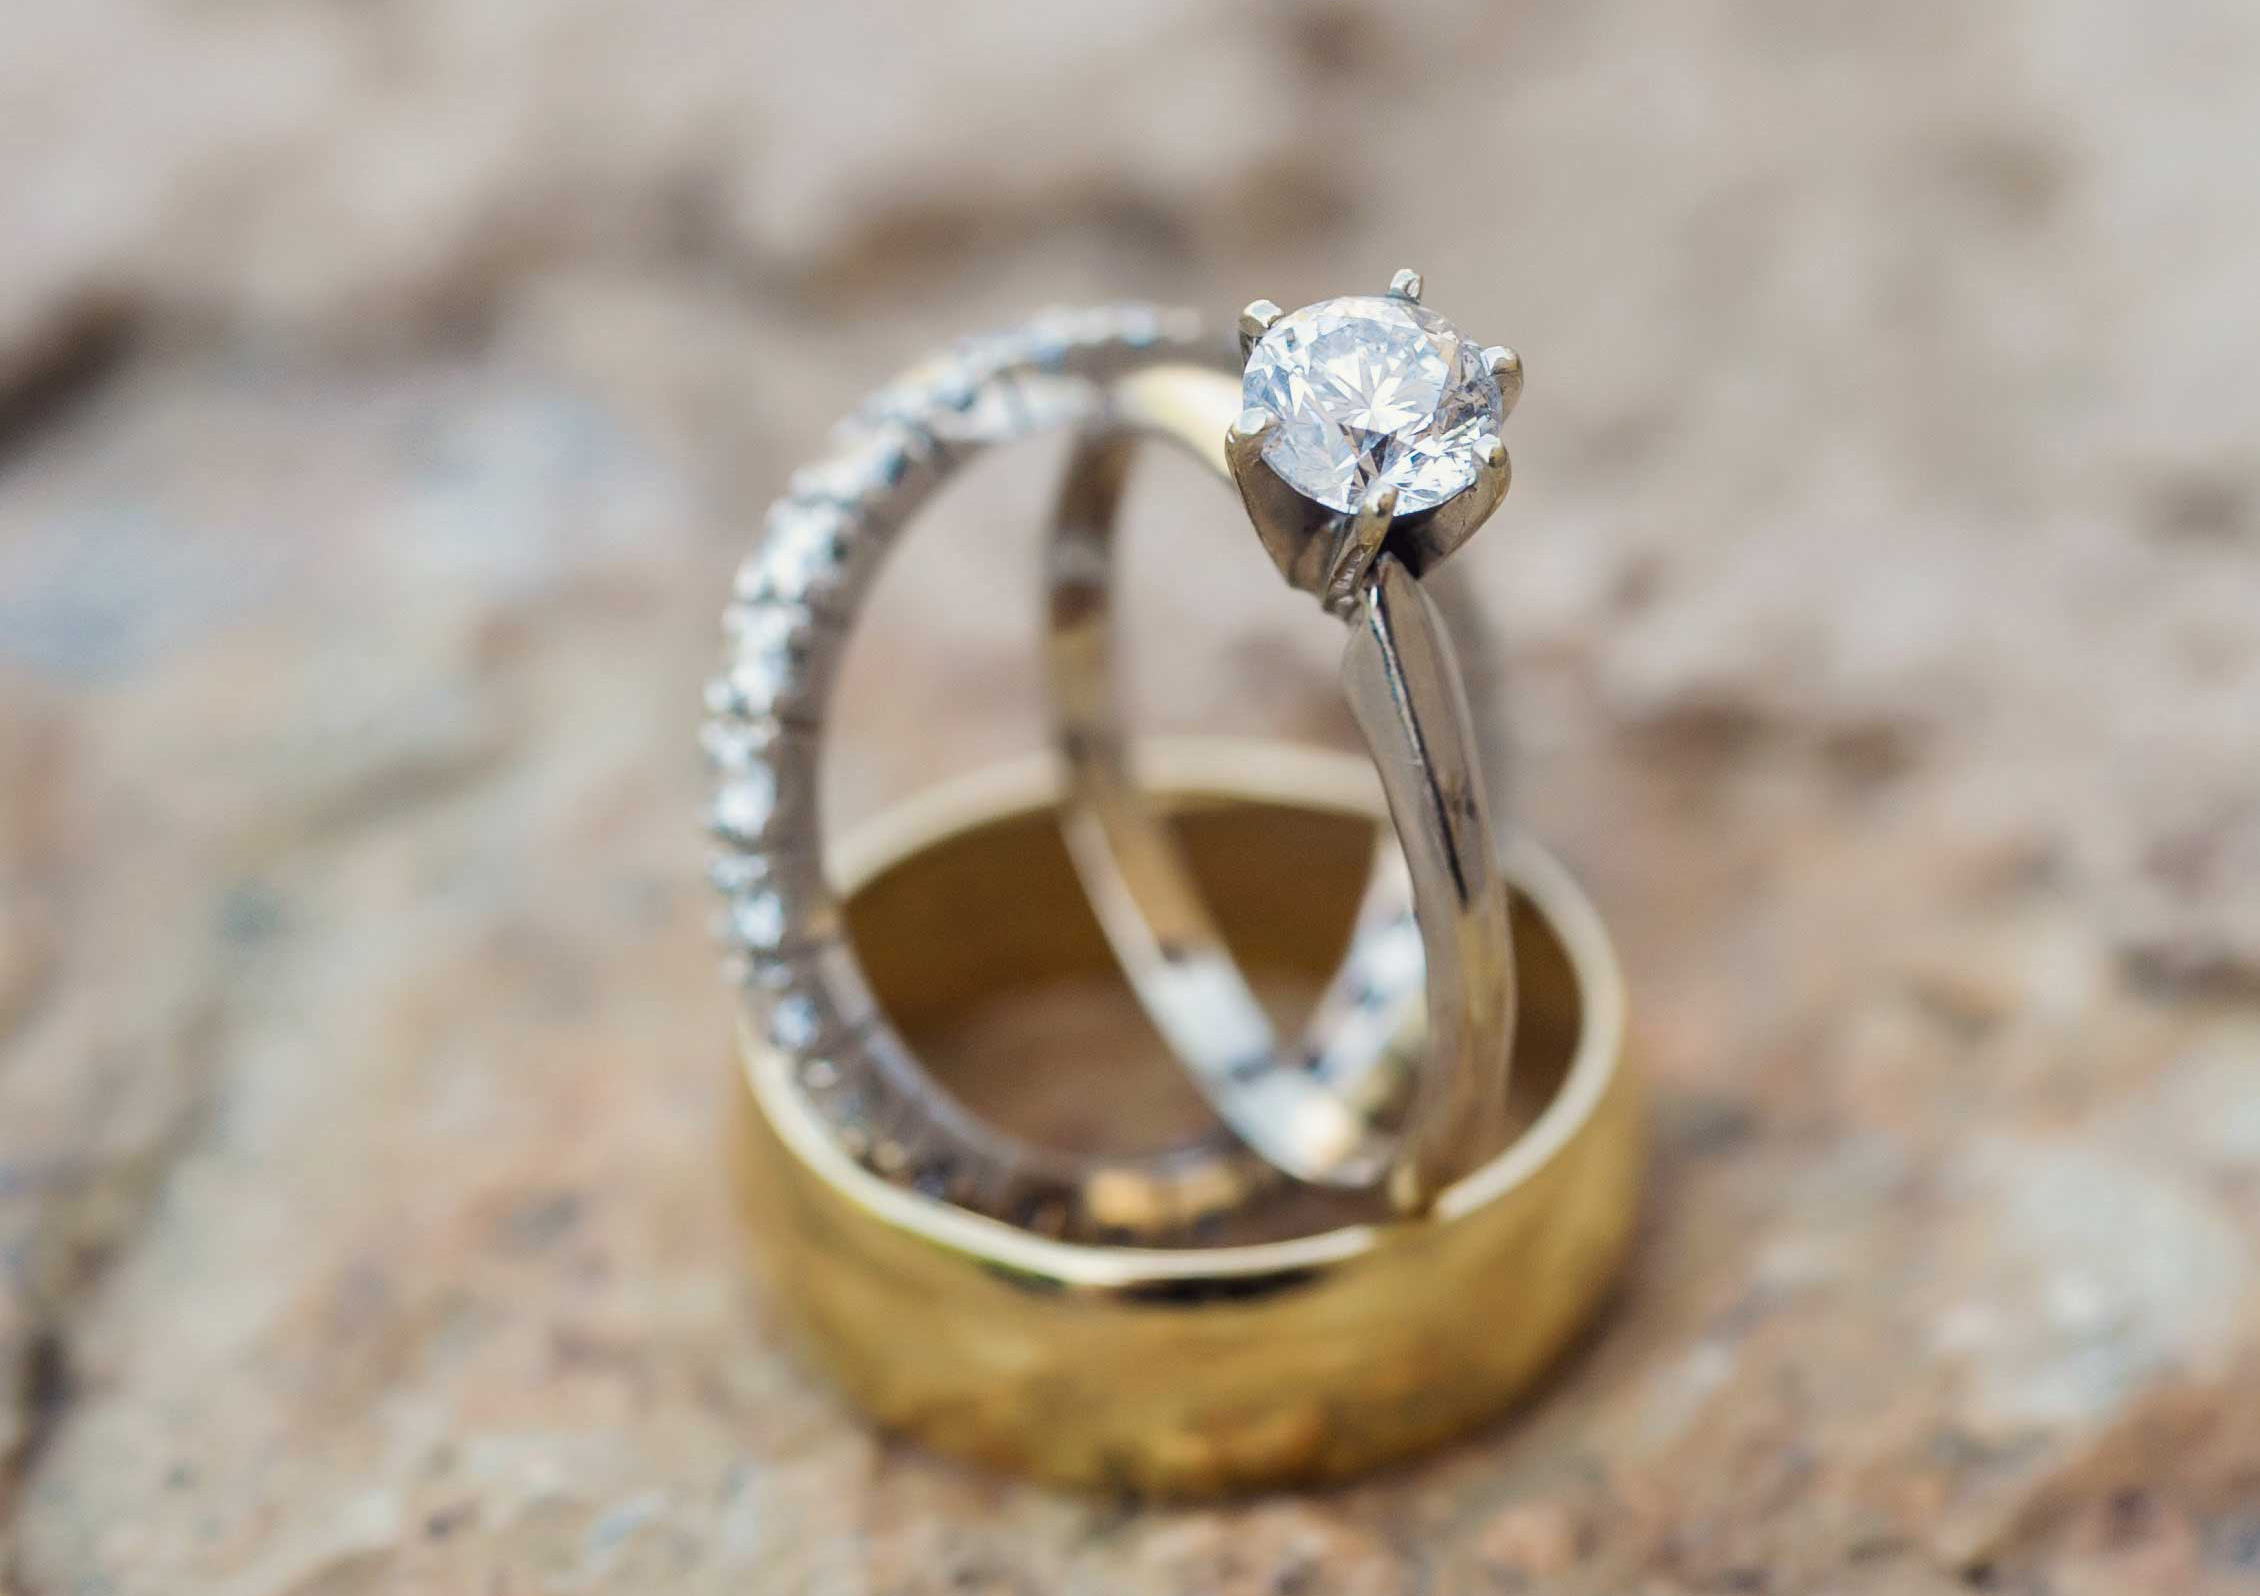 morena baccarin engagement ring inspiration, white gold platinum solitaire small diamond